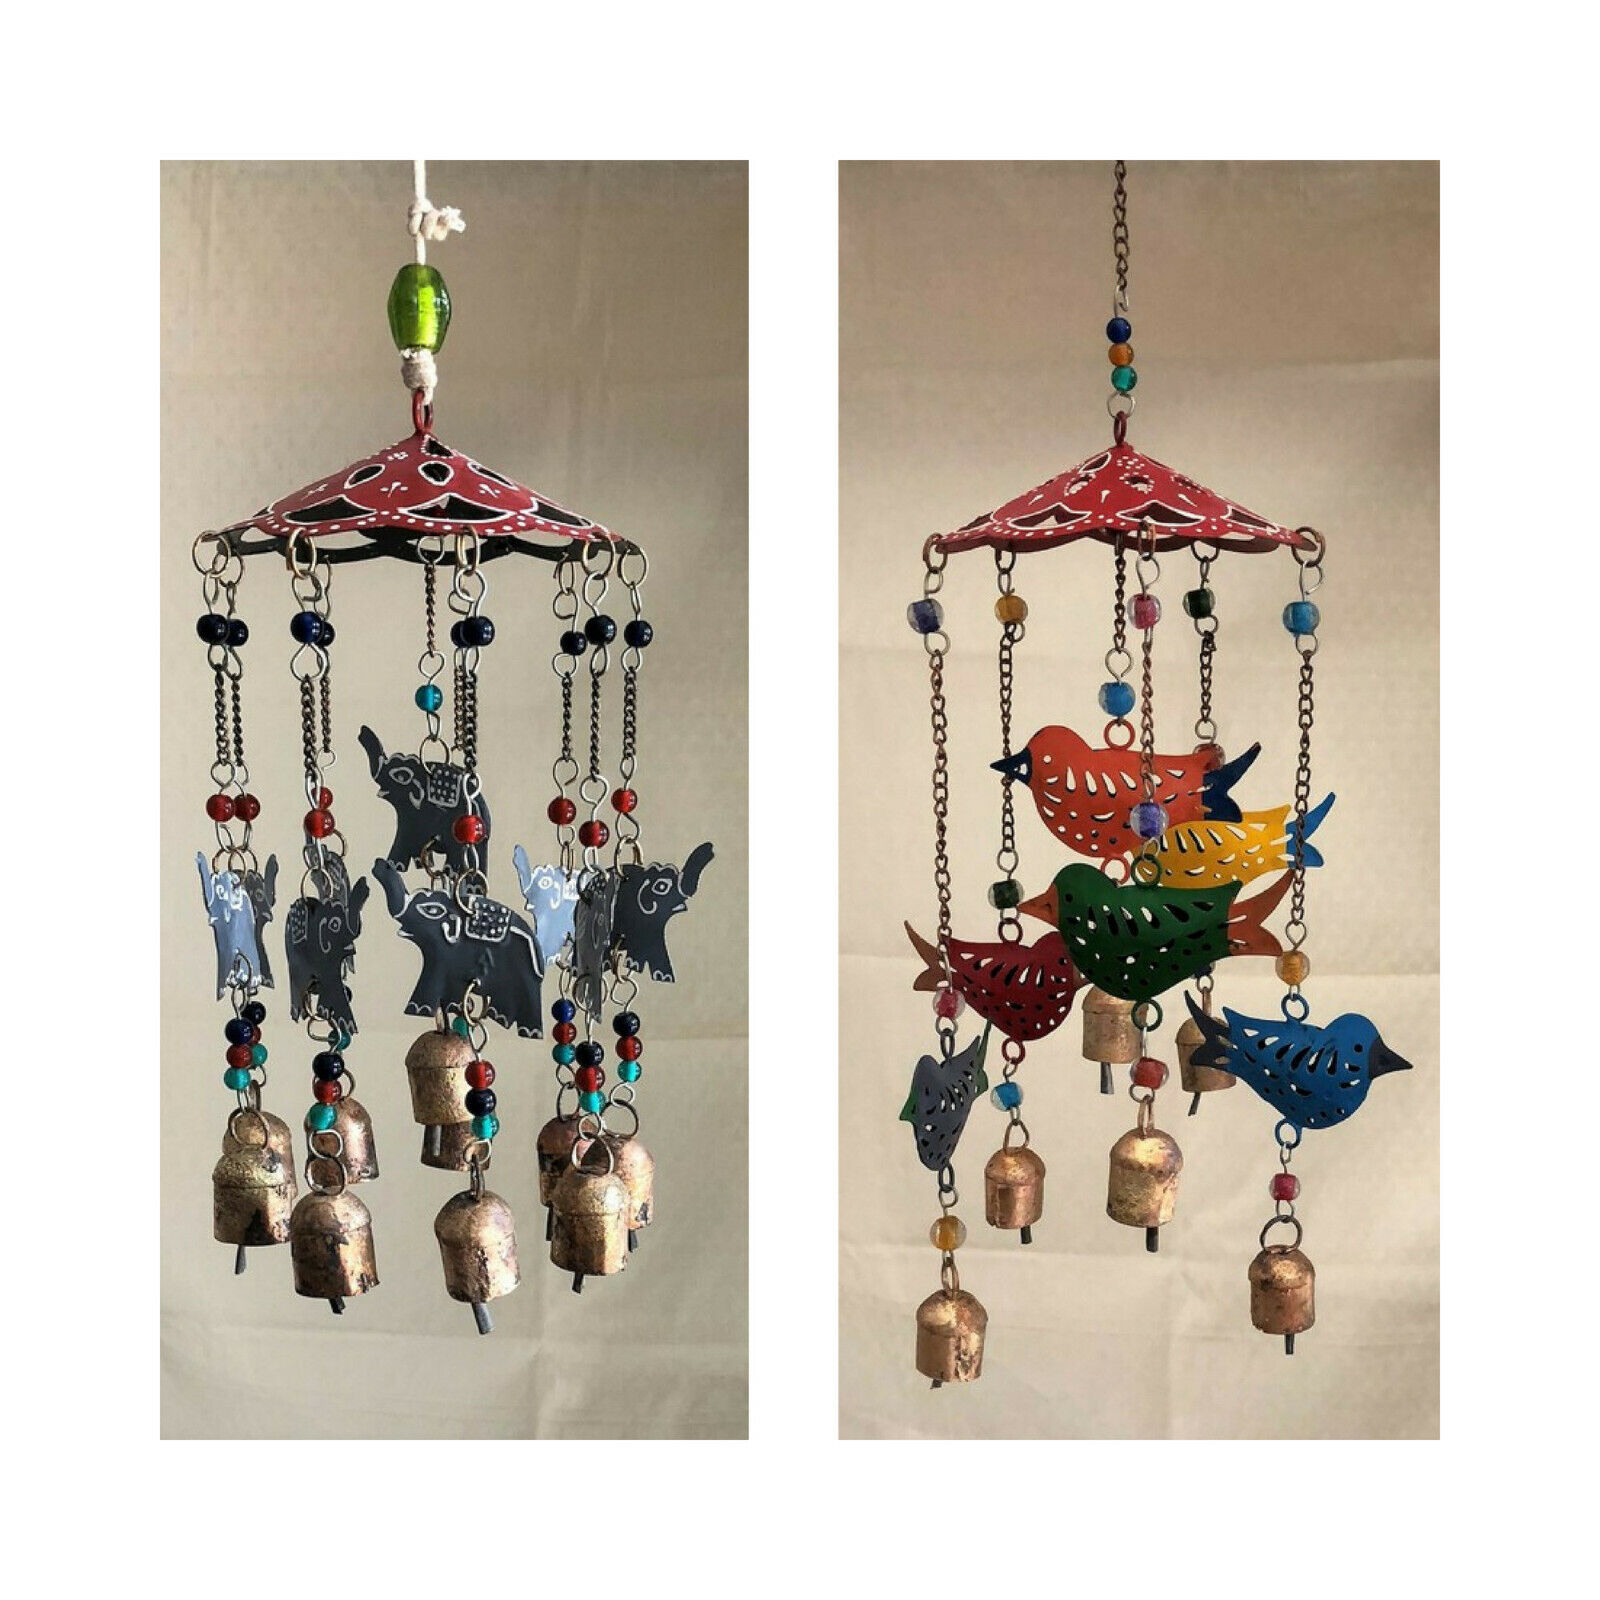 Large Wind Chimes Outdoor Sound Rich Relaxing Tones 6 x 15 inches Red Green Blue